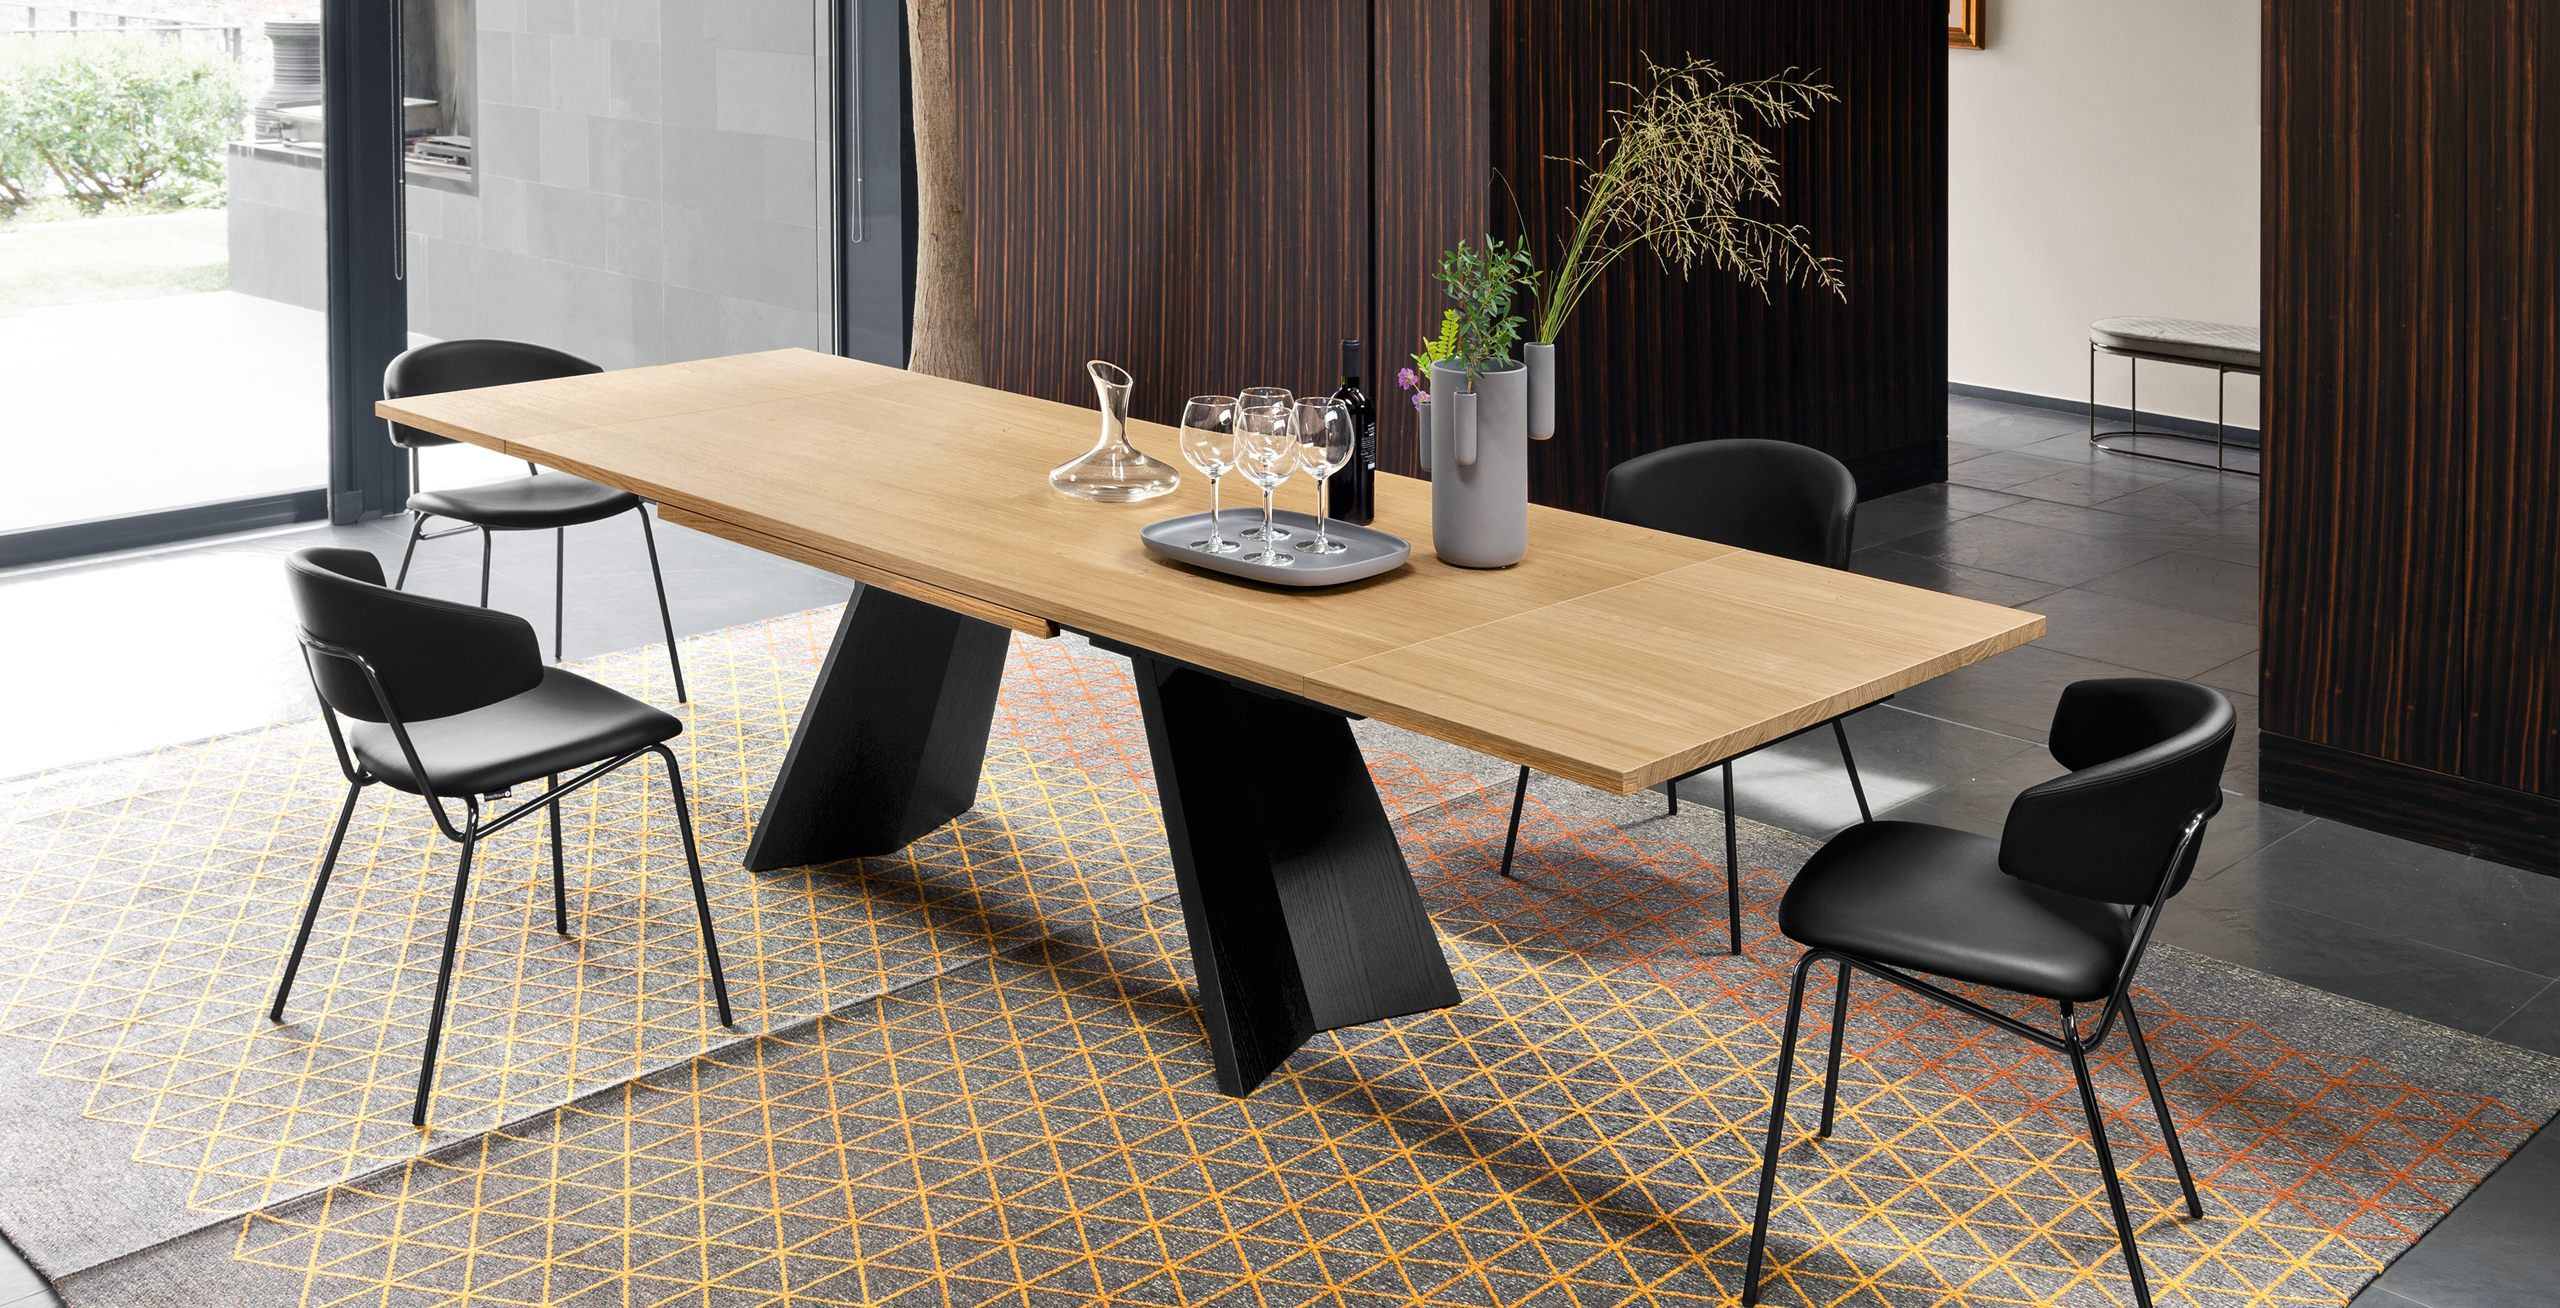 Recent Home Furniture: Italian Design Furnishingcalligaris – Calligaris Intended For Cincinnati 3 Piece Dining Sets (View 17 of 20)